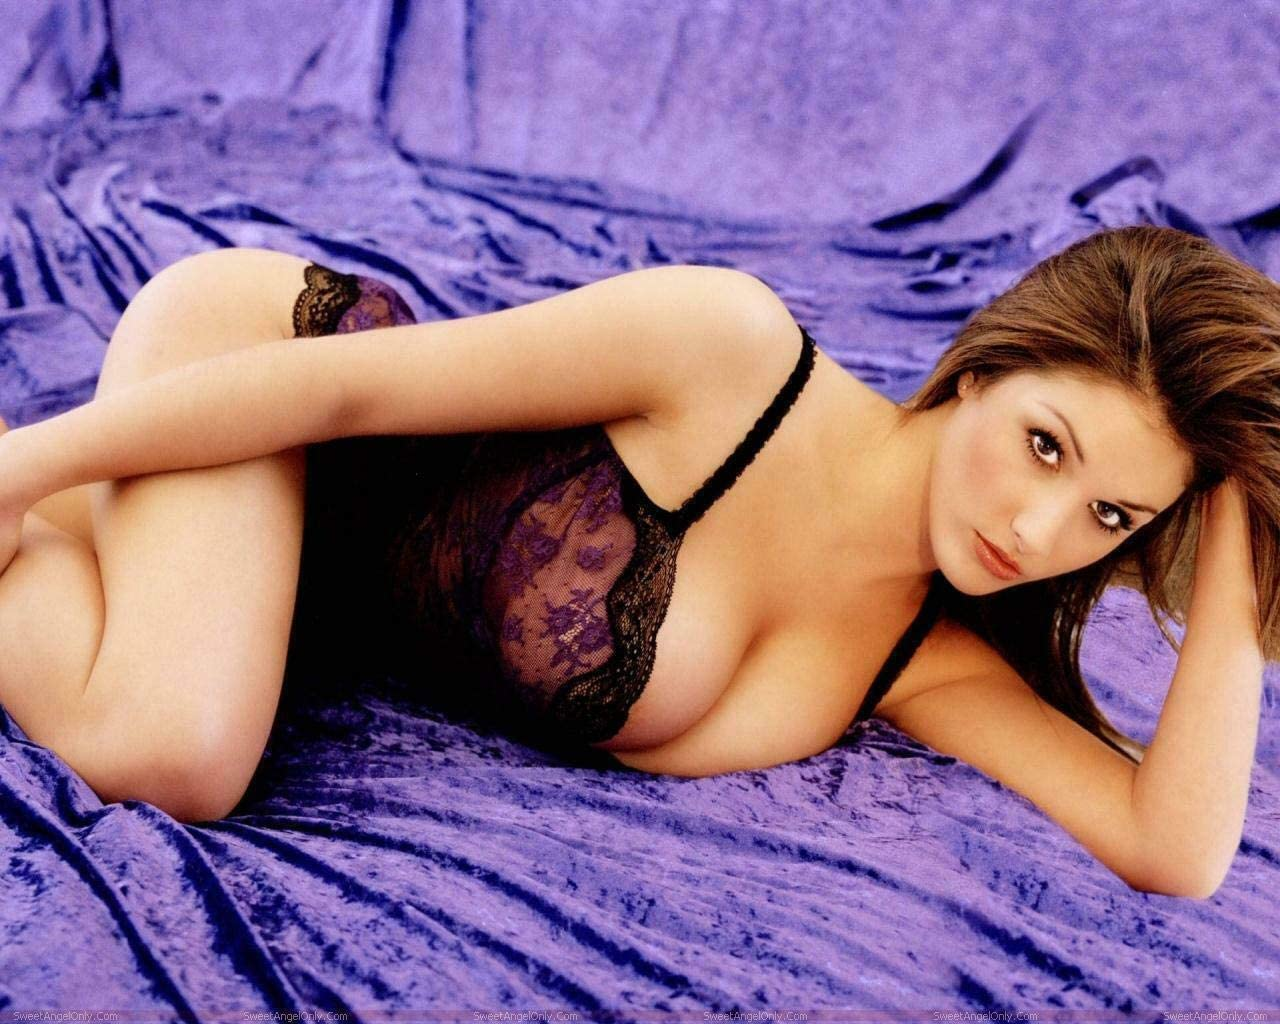 Lucy pinder lingerie